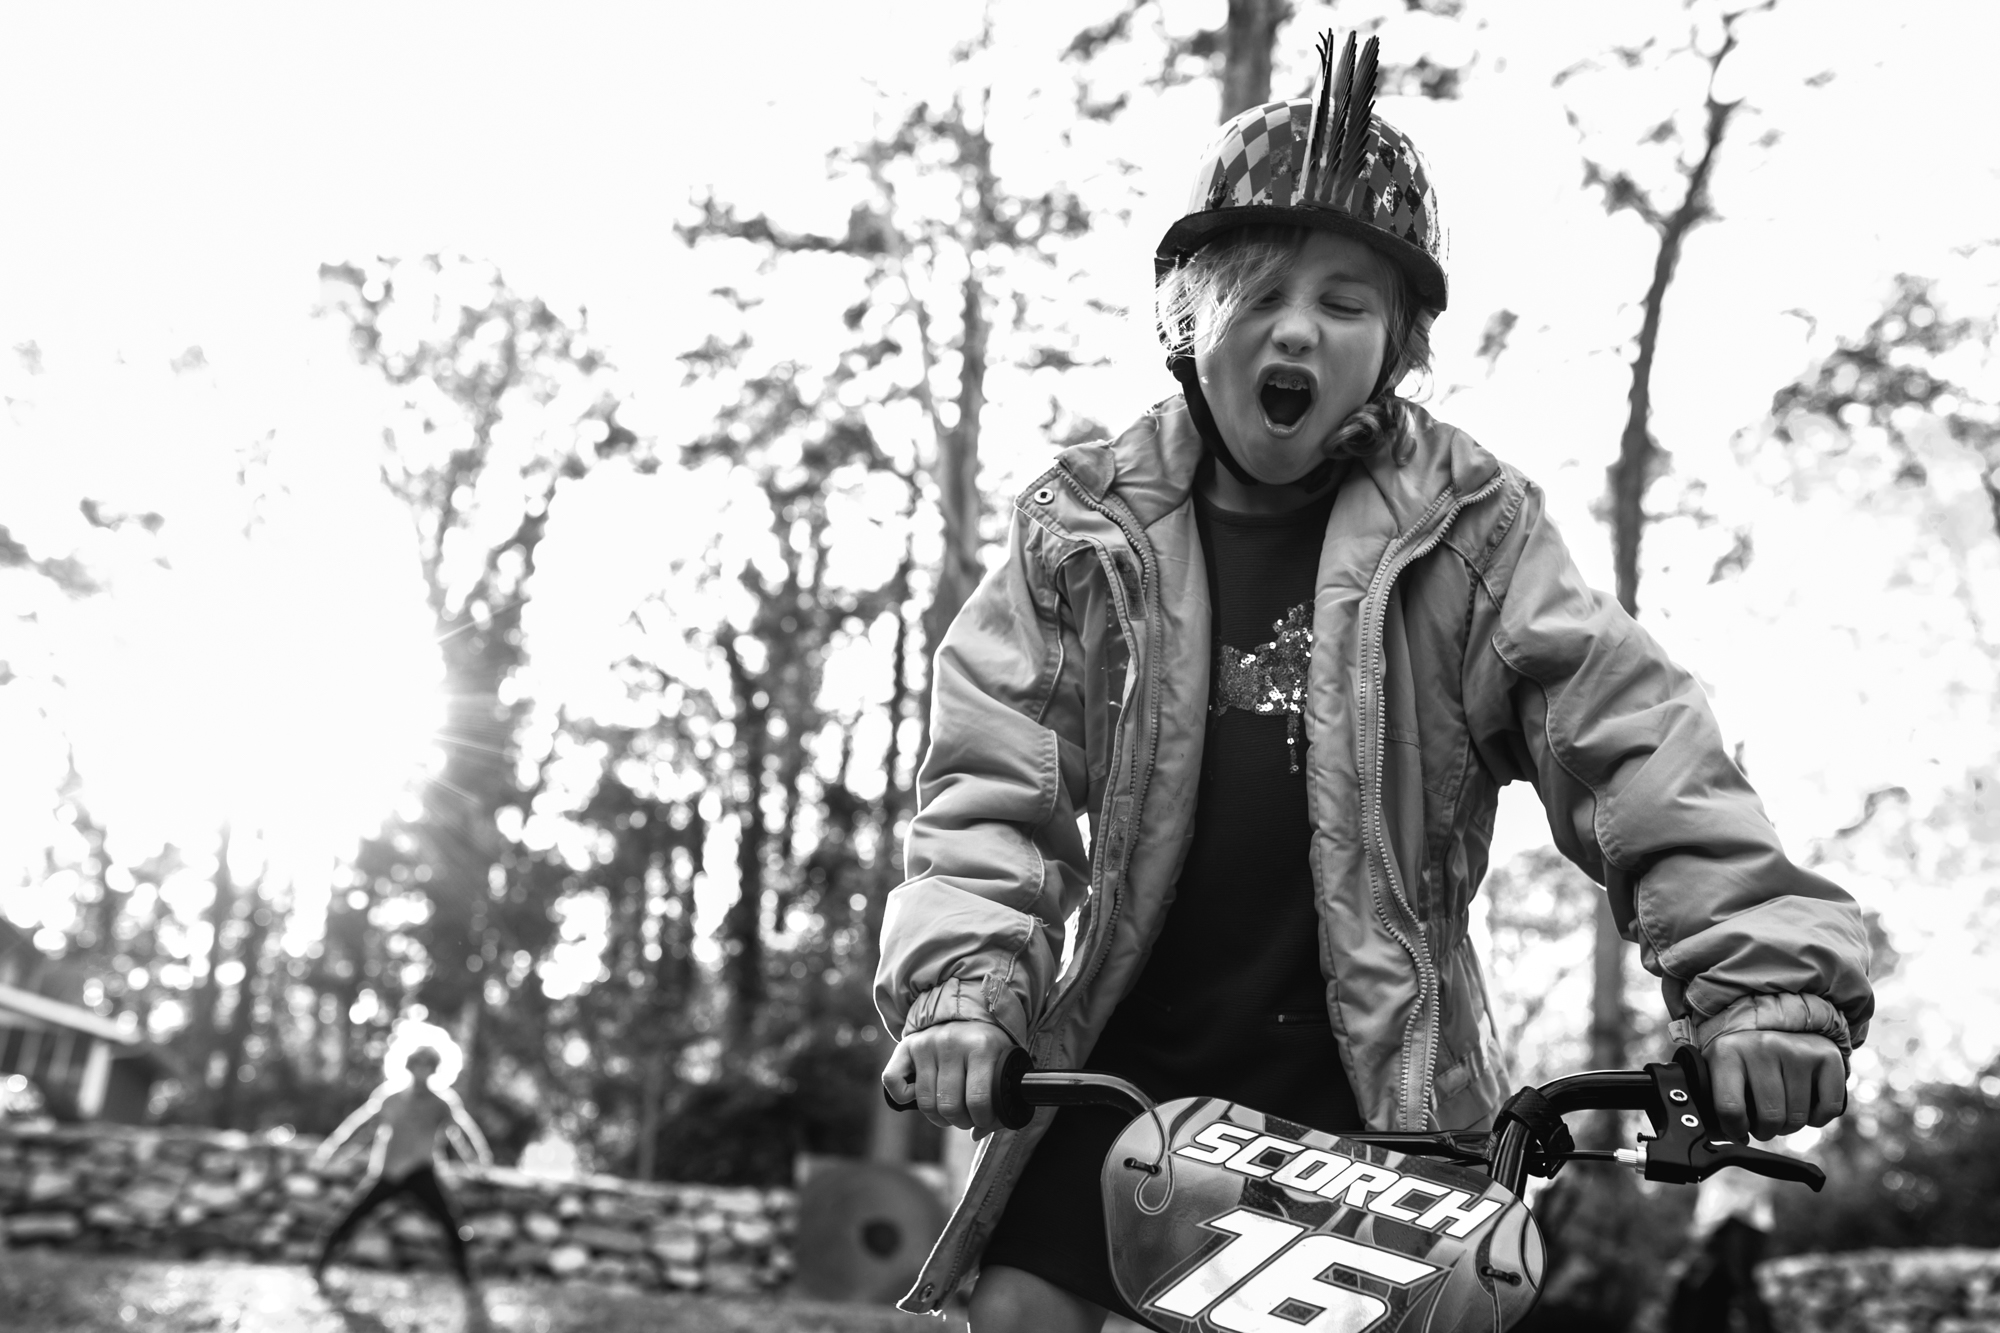 A girl rides a bike with a fierce expression